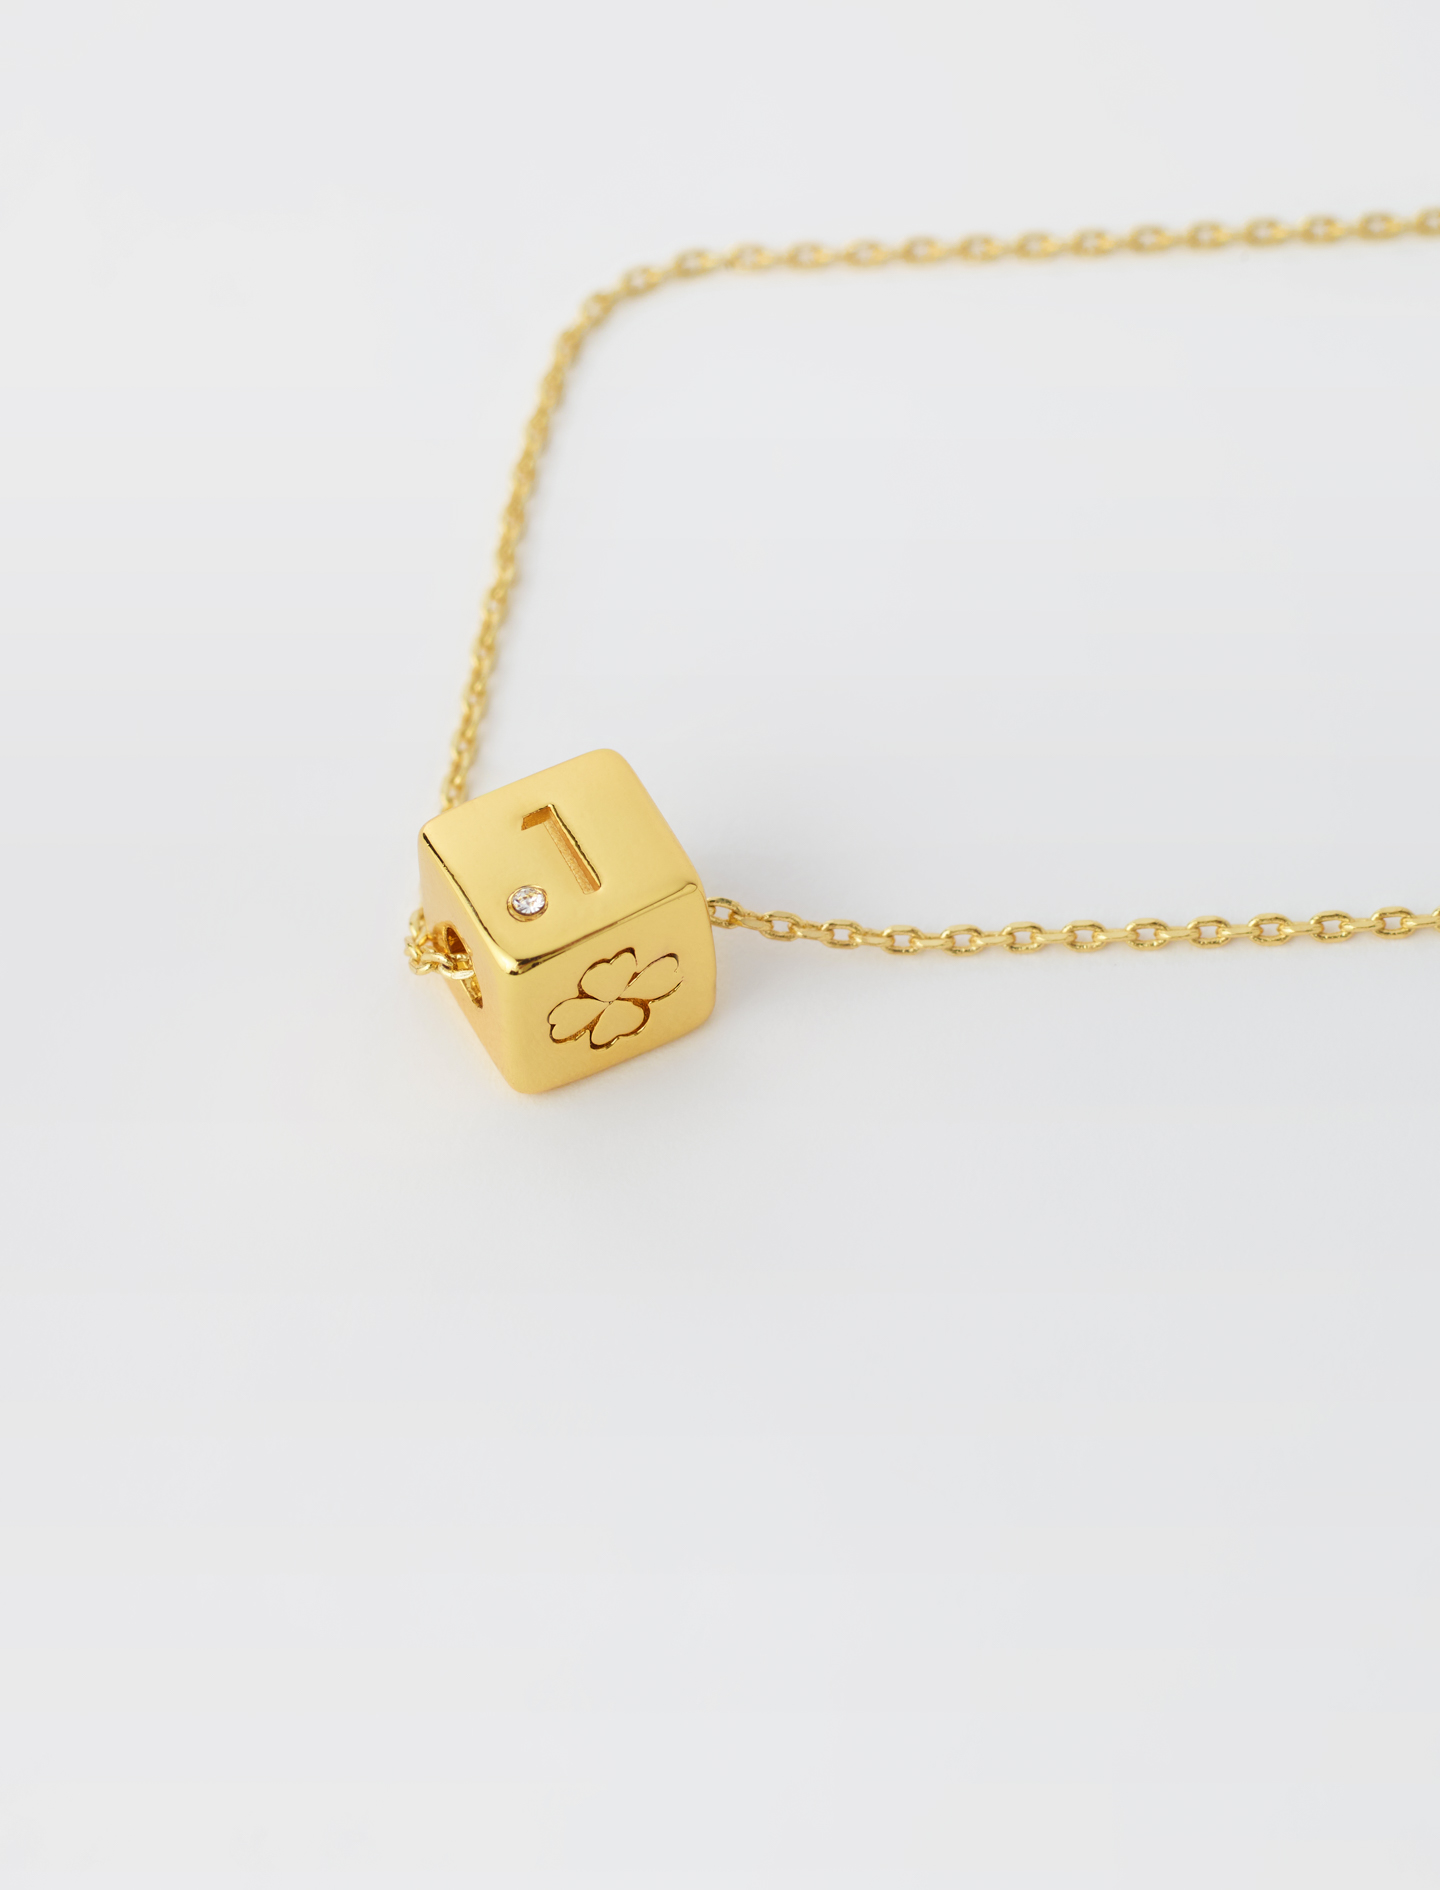 Number 1 dice necklace Gold by Maje Paris